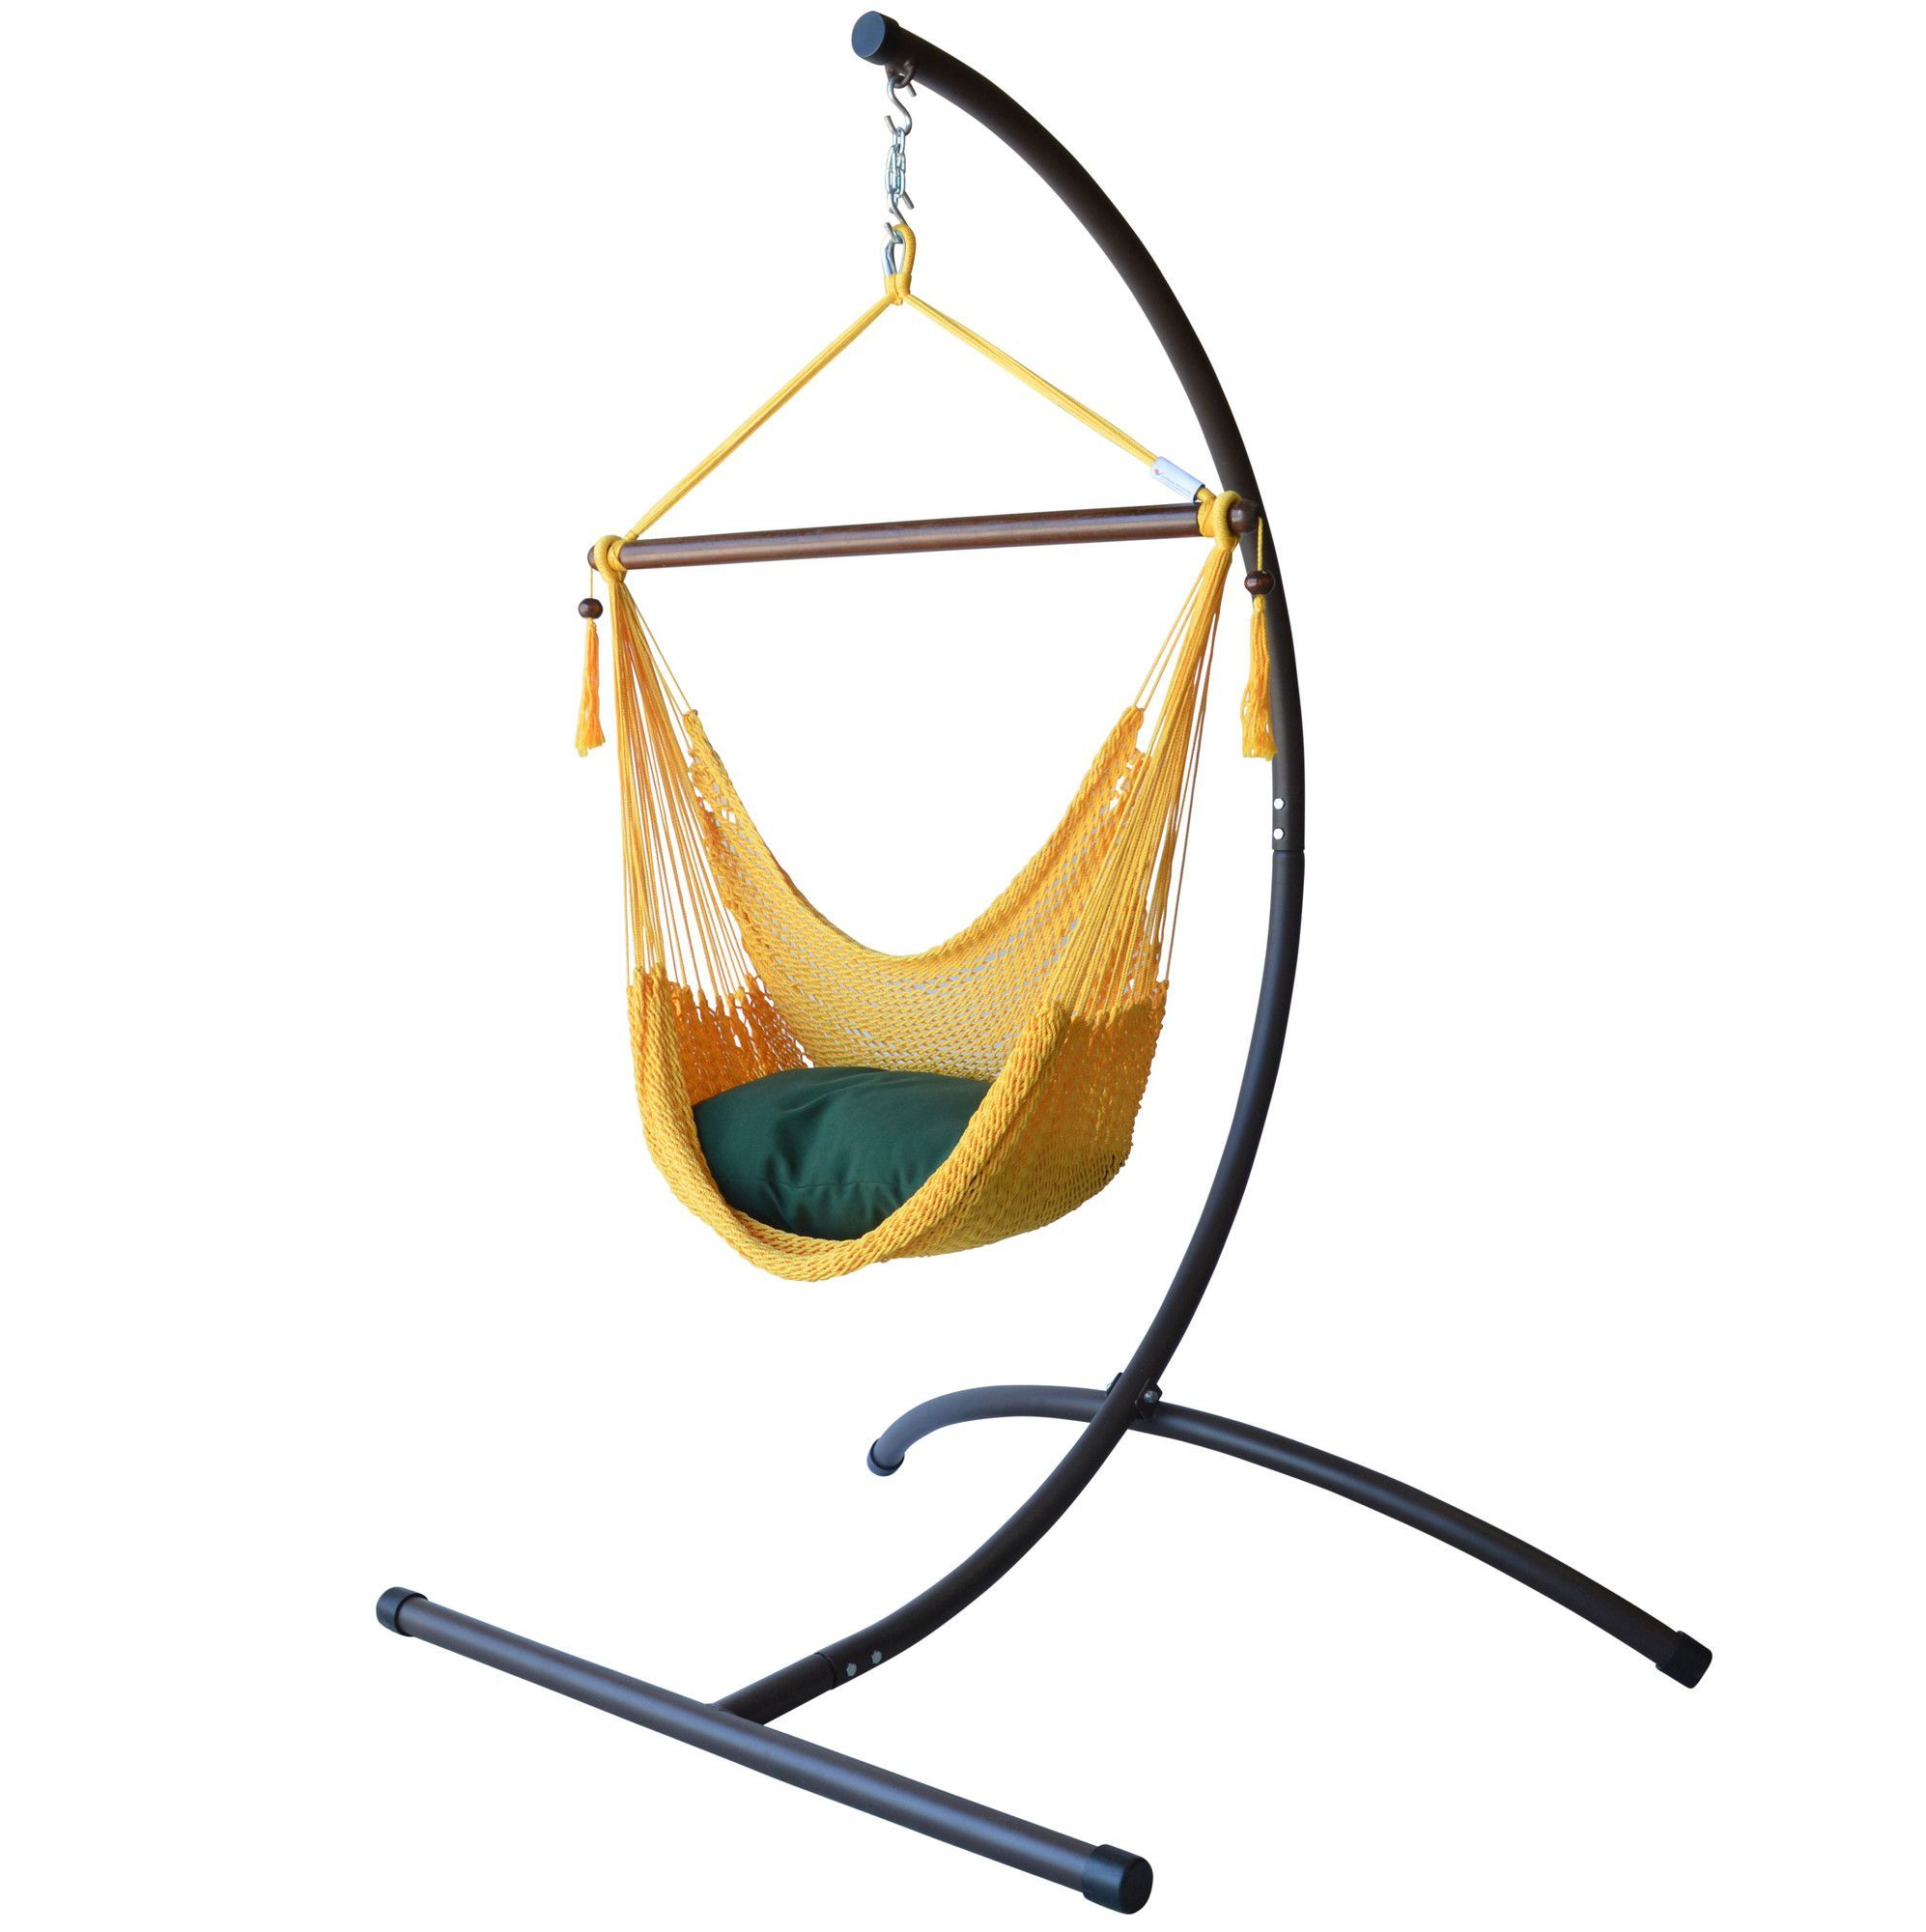 maraon standaard stand hammock chairs hangstoel hanging of collection chair maranon